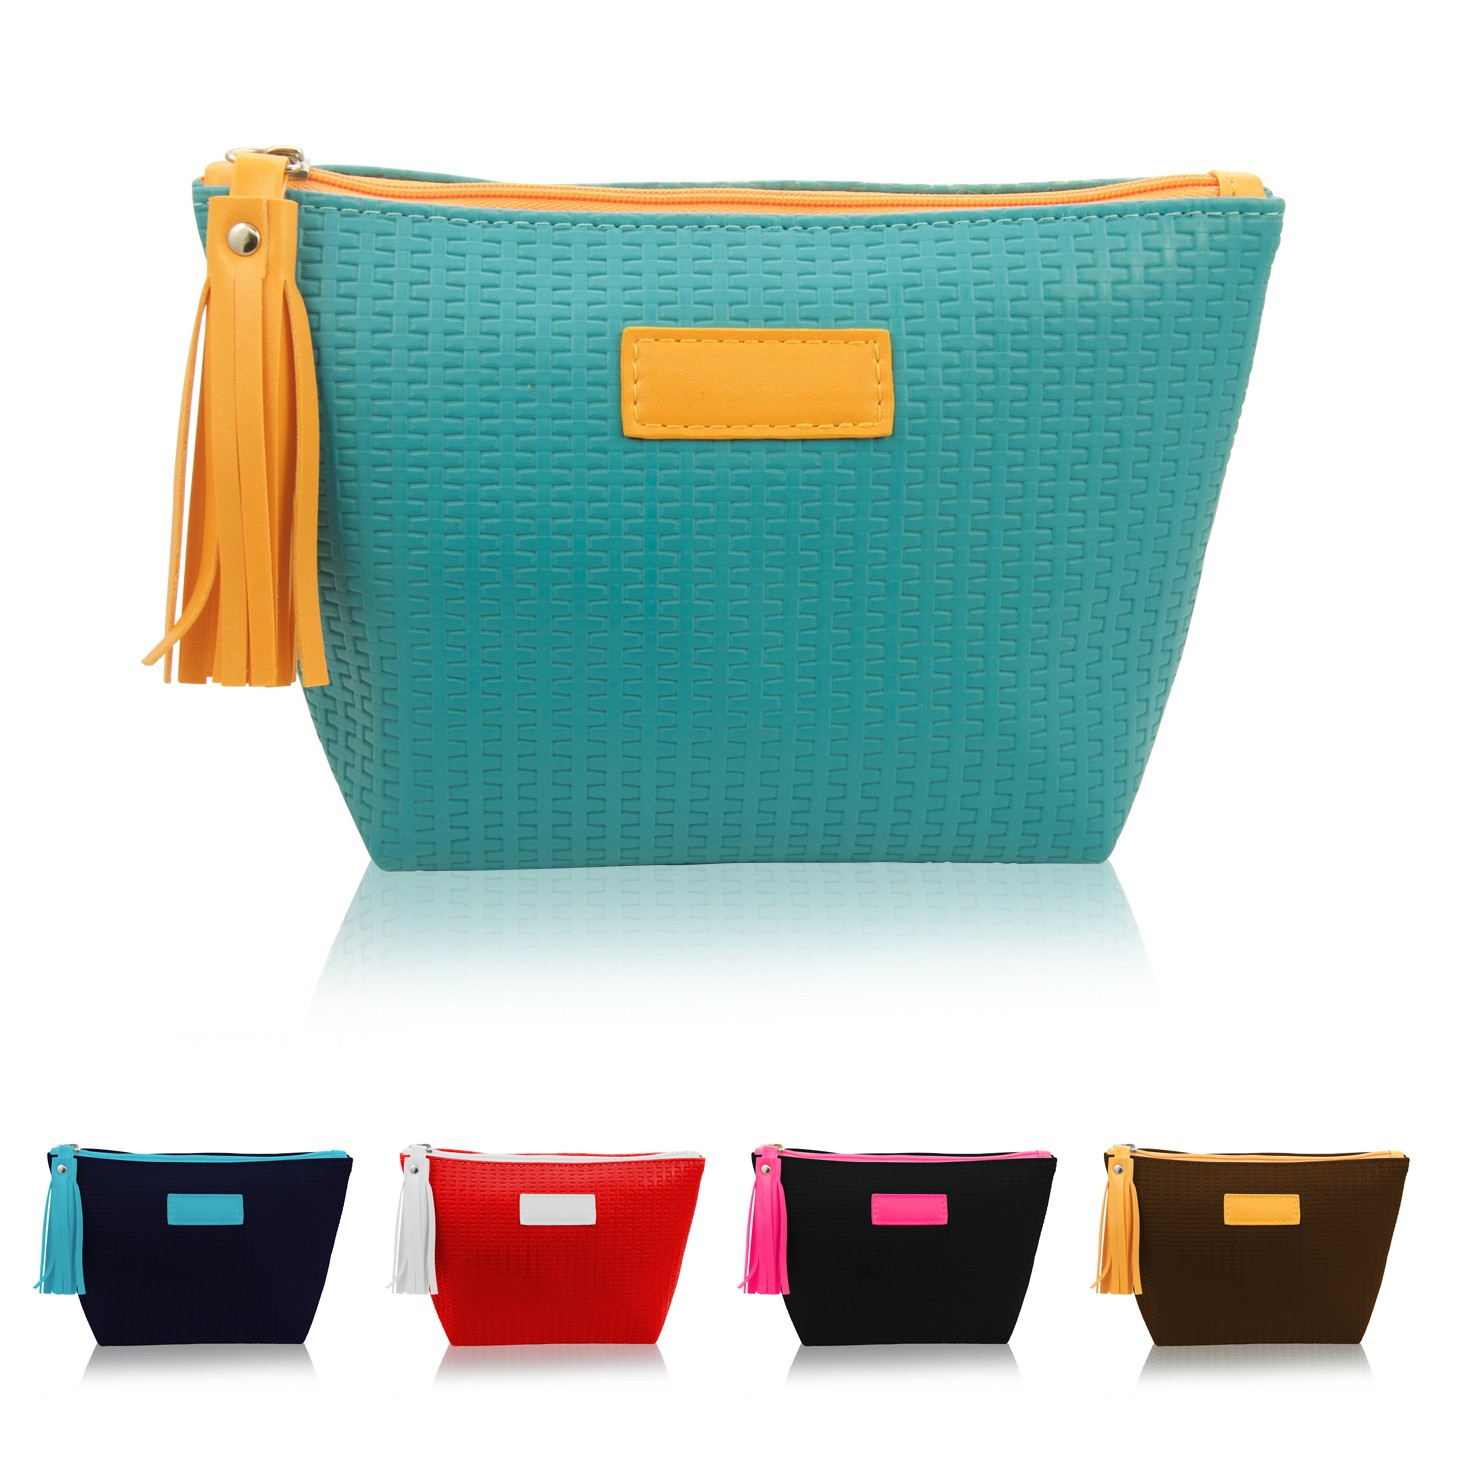 Designer Textured Leatherette Cosmetic Bag with Tassel Puller